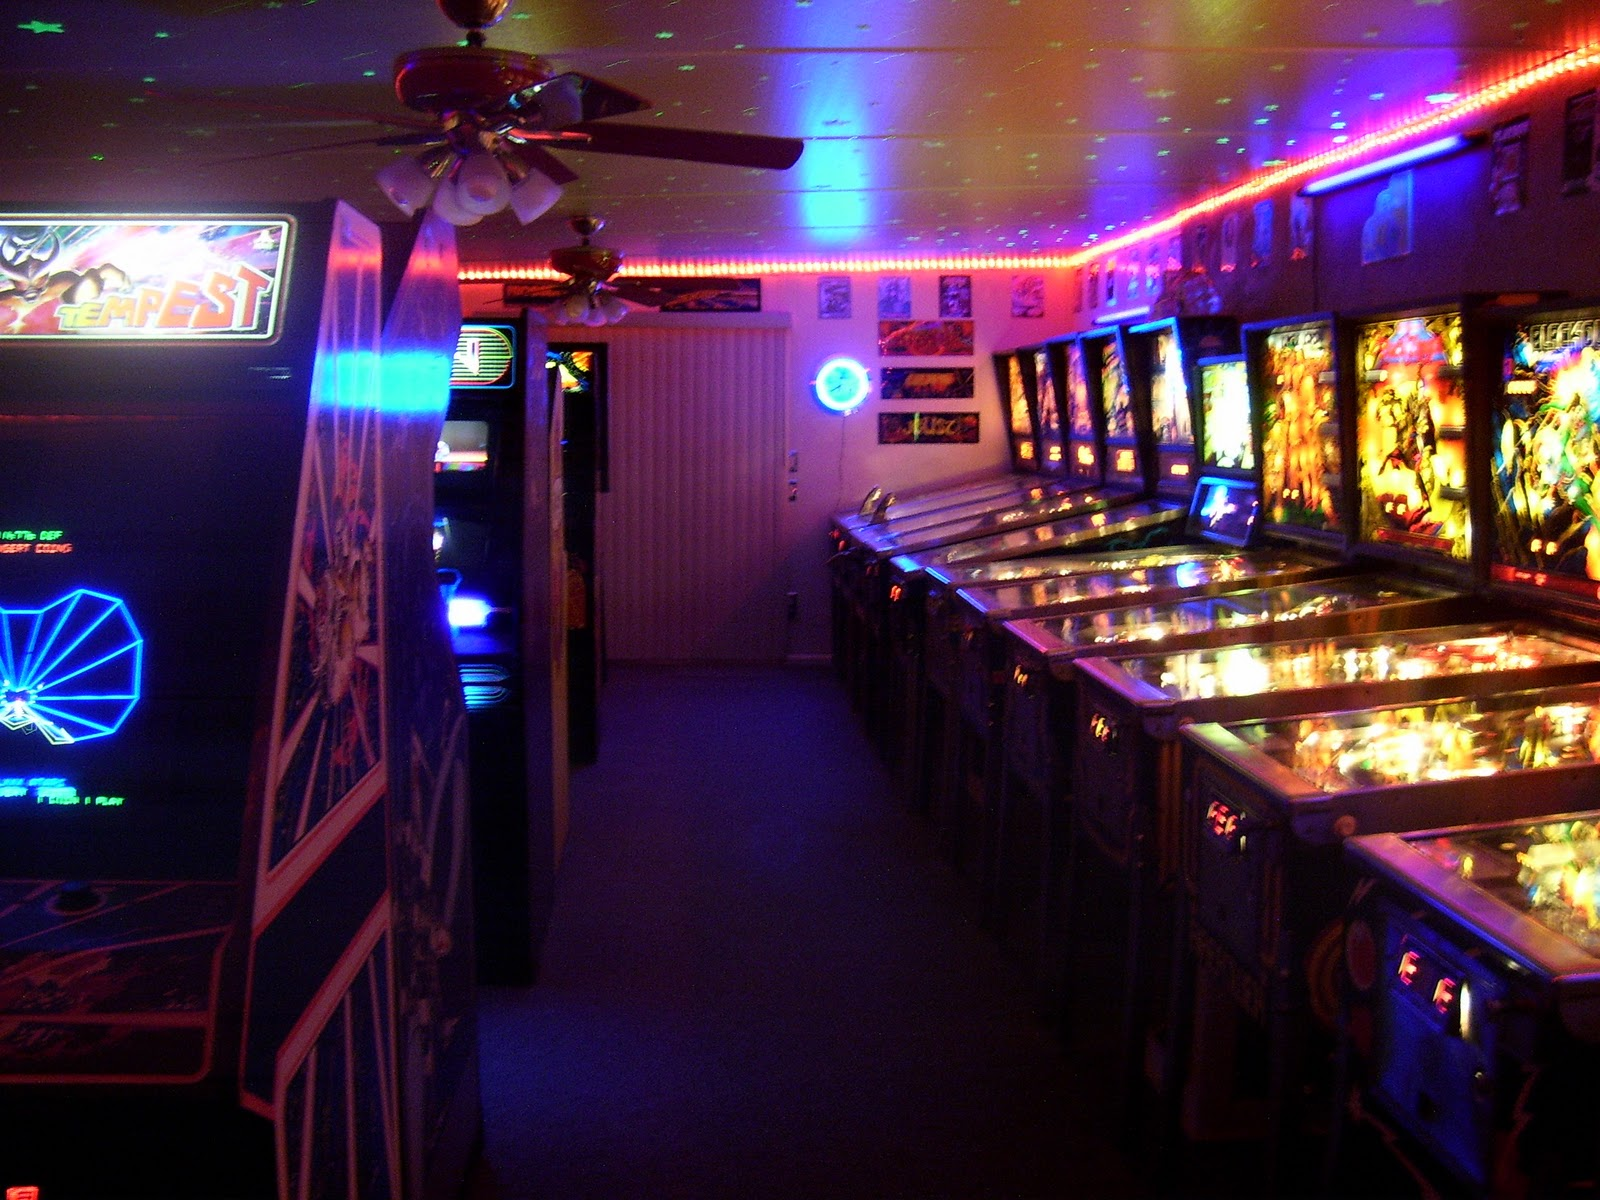 DOUG 39 S HOME 80 39 S ARCADE GAME ROOM